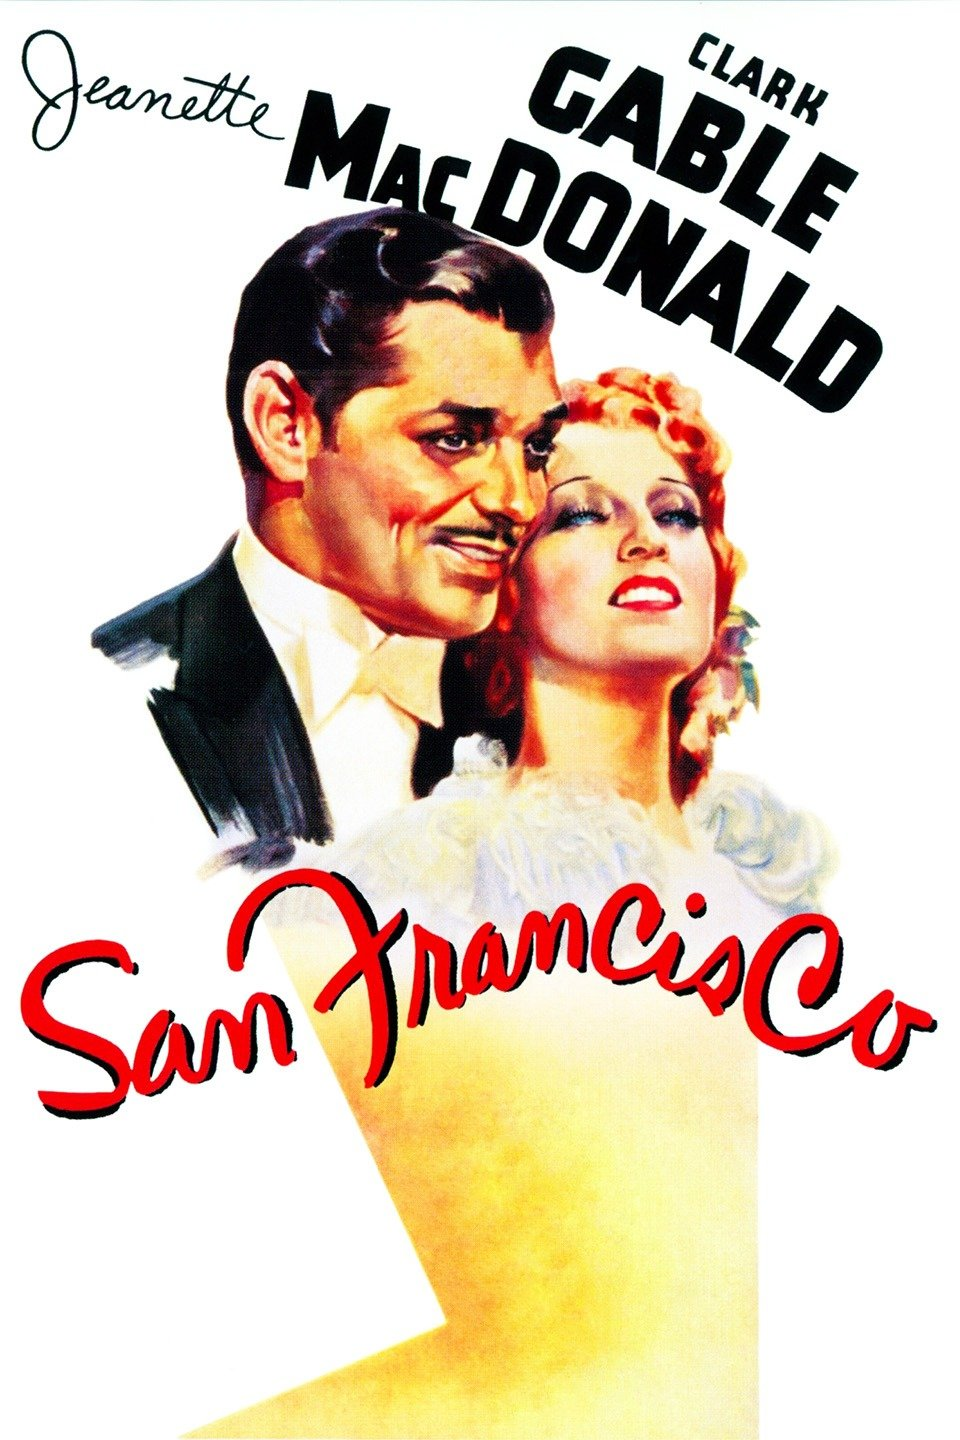 — SAN FRANCISCO   Blackie Norton (Clark Gable) is a nightclub owner who hires a down-on-her-luck singer for his club, Mary Blake (Jeanette MacDonald). The two hit it off and even become romantically involved, but soon she is courted by real-estate magnate Jack Burley (Jack Holt) to sing at the Tivoli Opera House. At first she refuses, but when she sees questionable posters of her put up by Blackie, she leaves, forcing Blackie to find a way to win her and his business back.